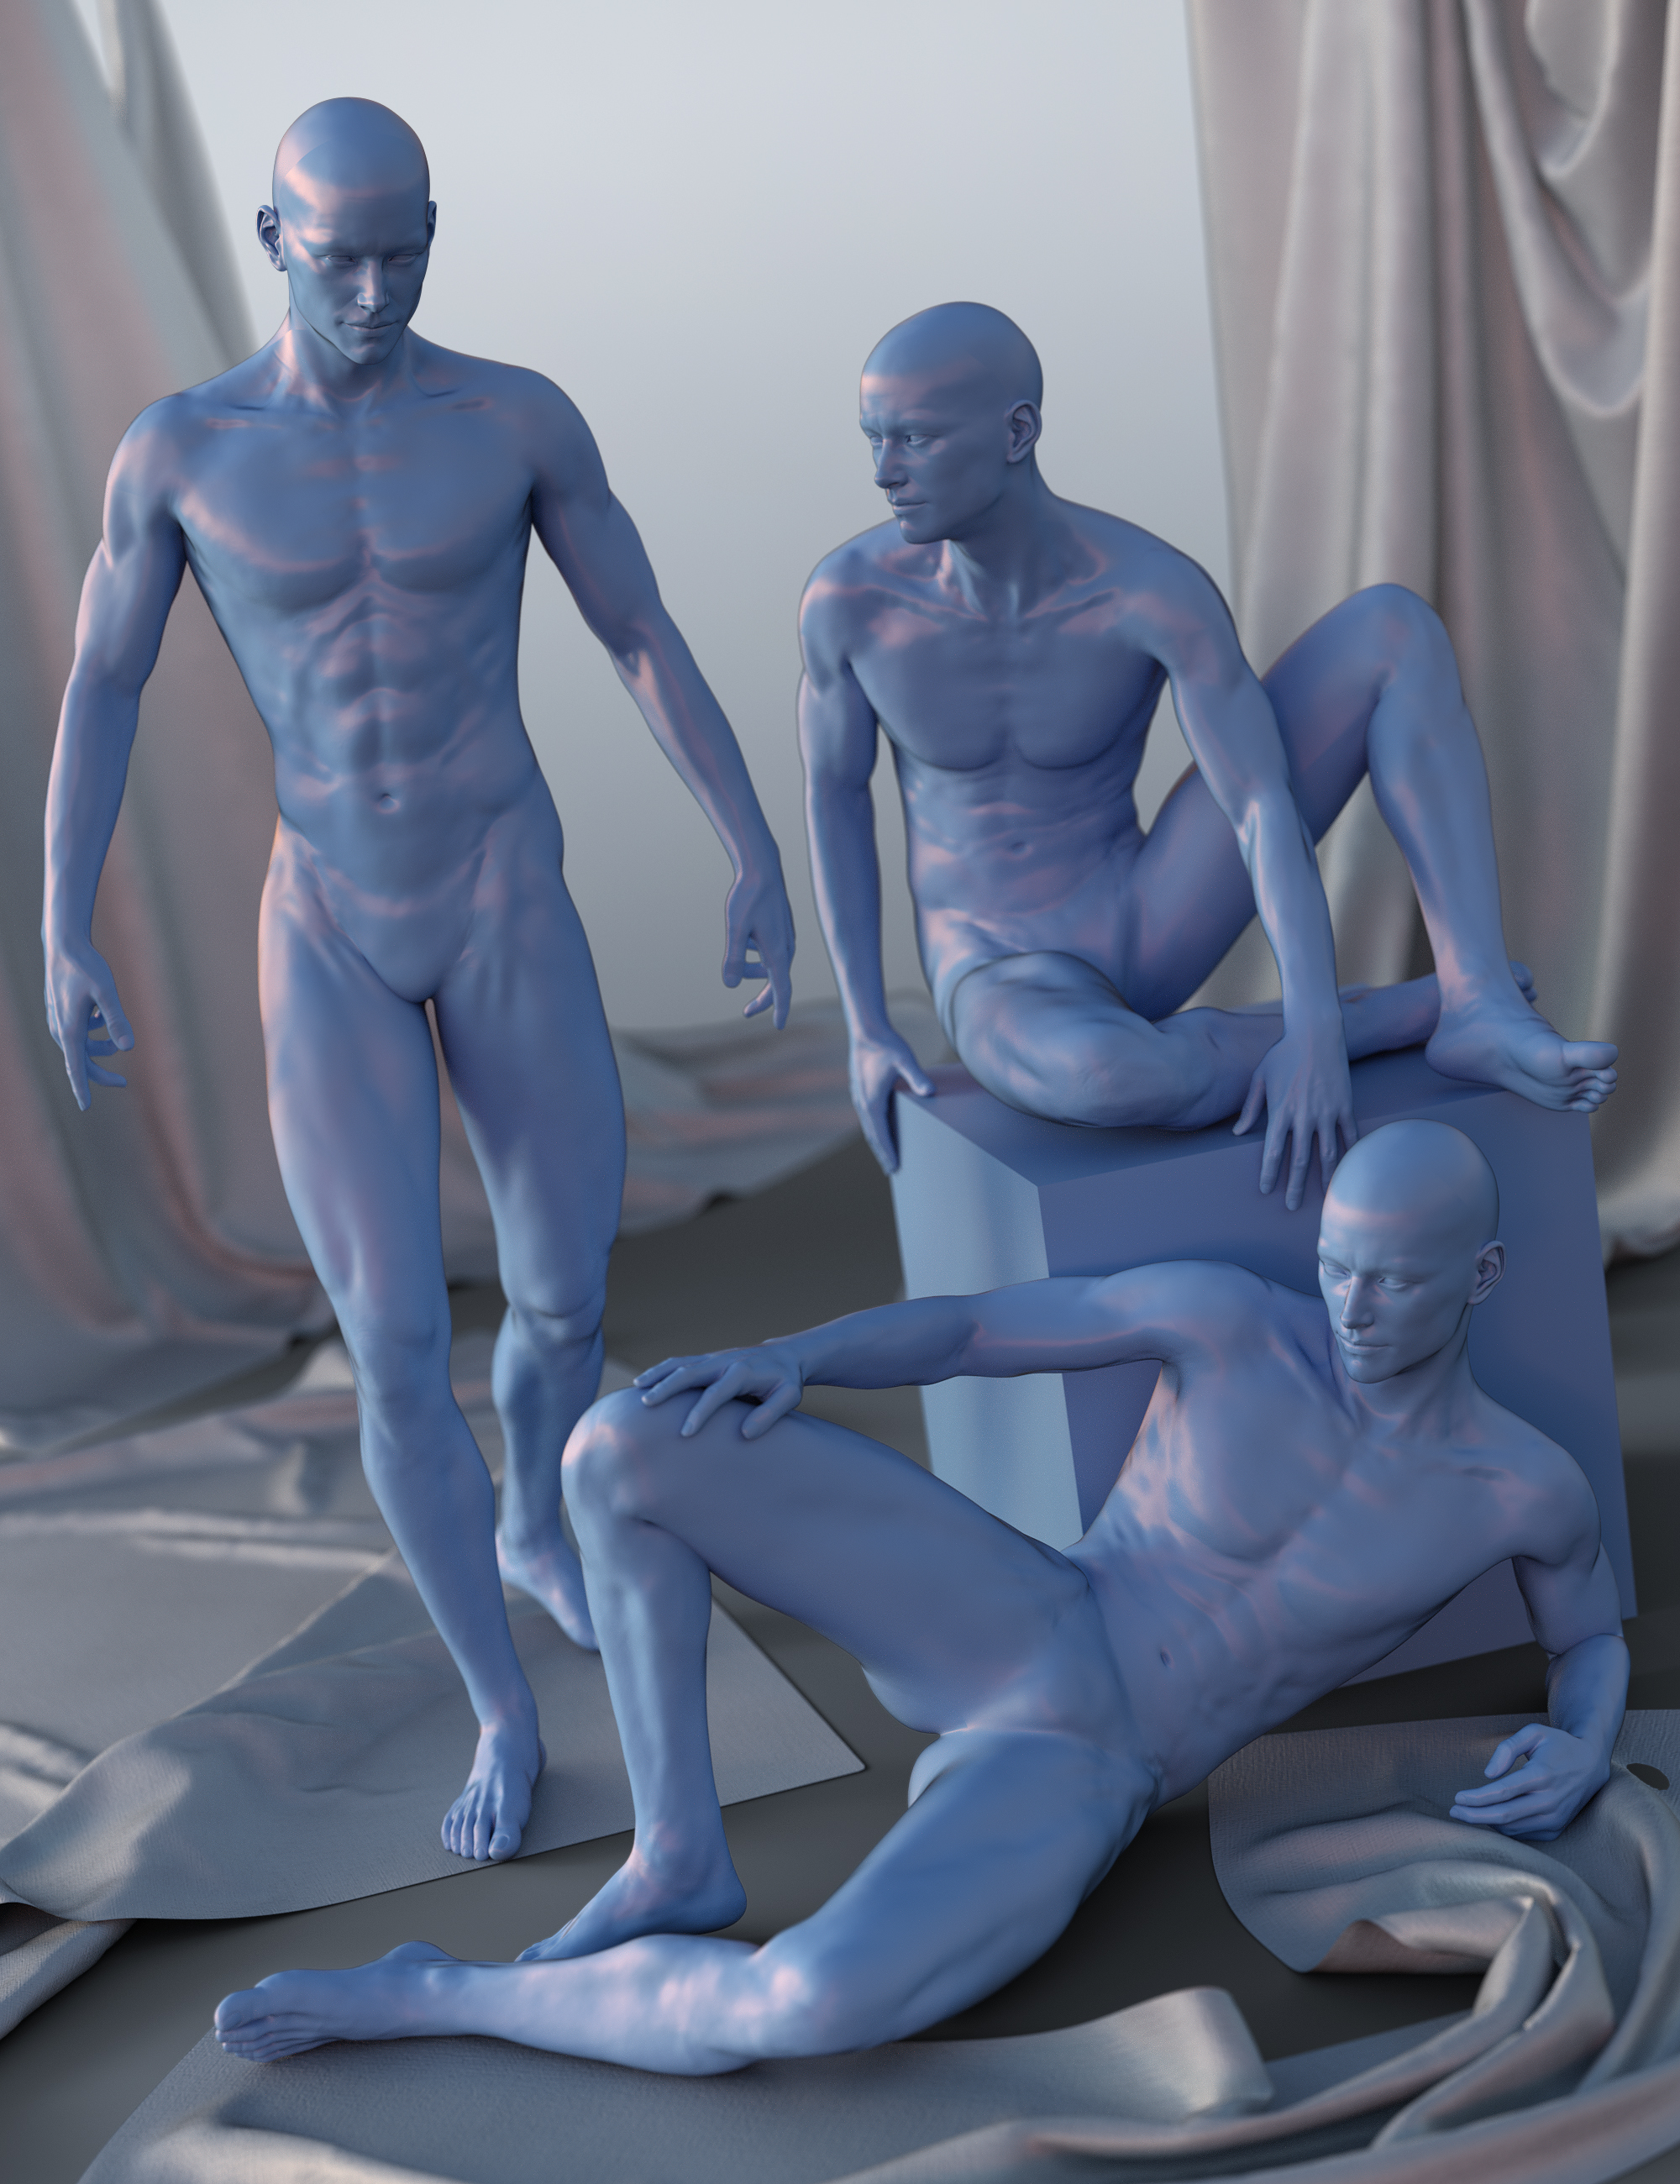 Blue Steel Poses for Michael 7 by: Devon, 3D Models by Daz 3D